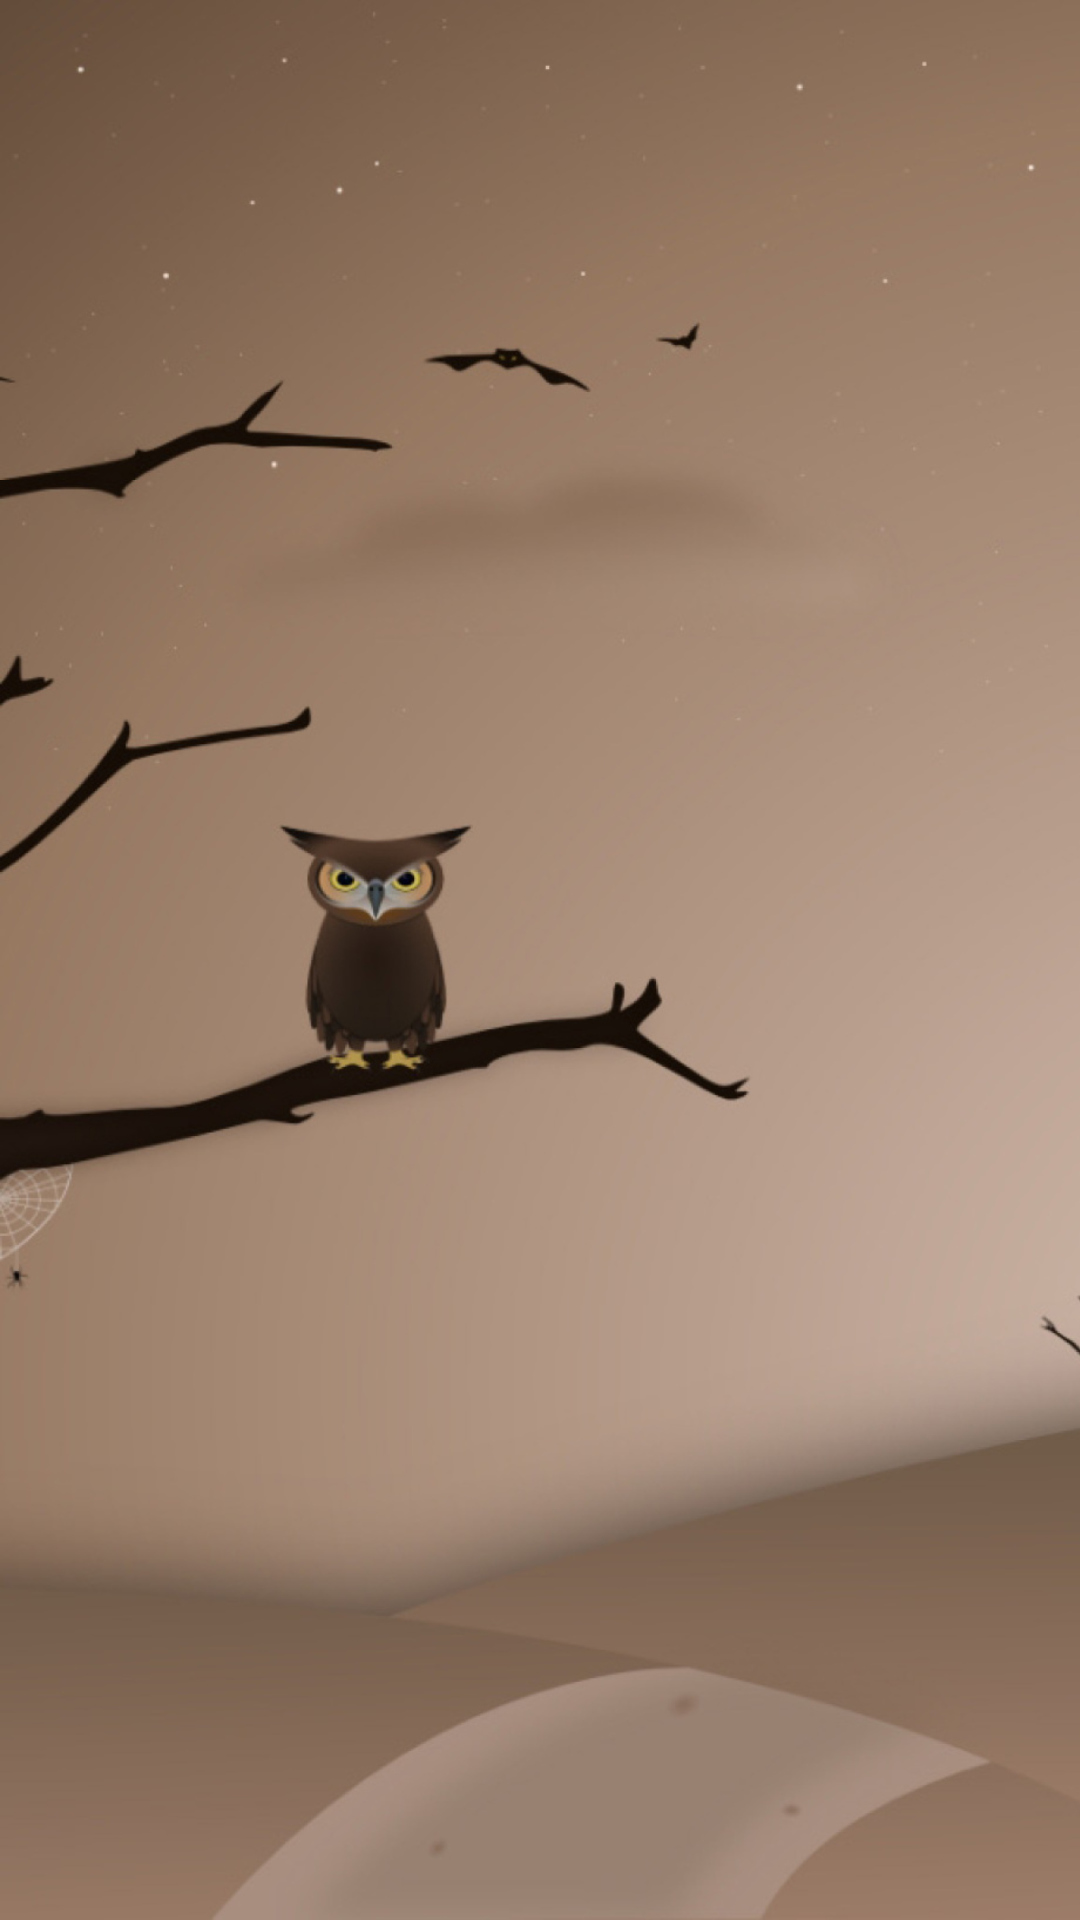 The Avegners Wallpaper Quotes Hd Cute Owl Wallpaper For Android Pixelstalk Net